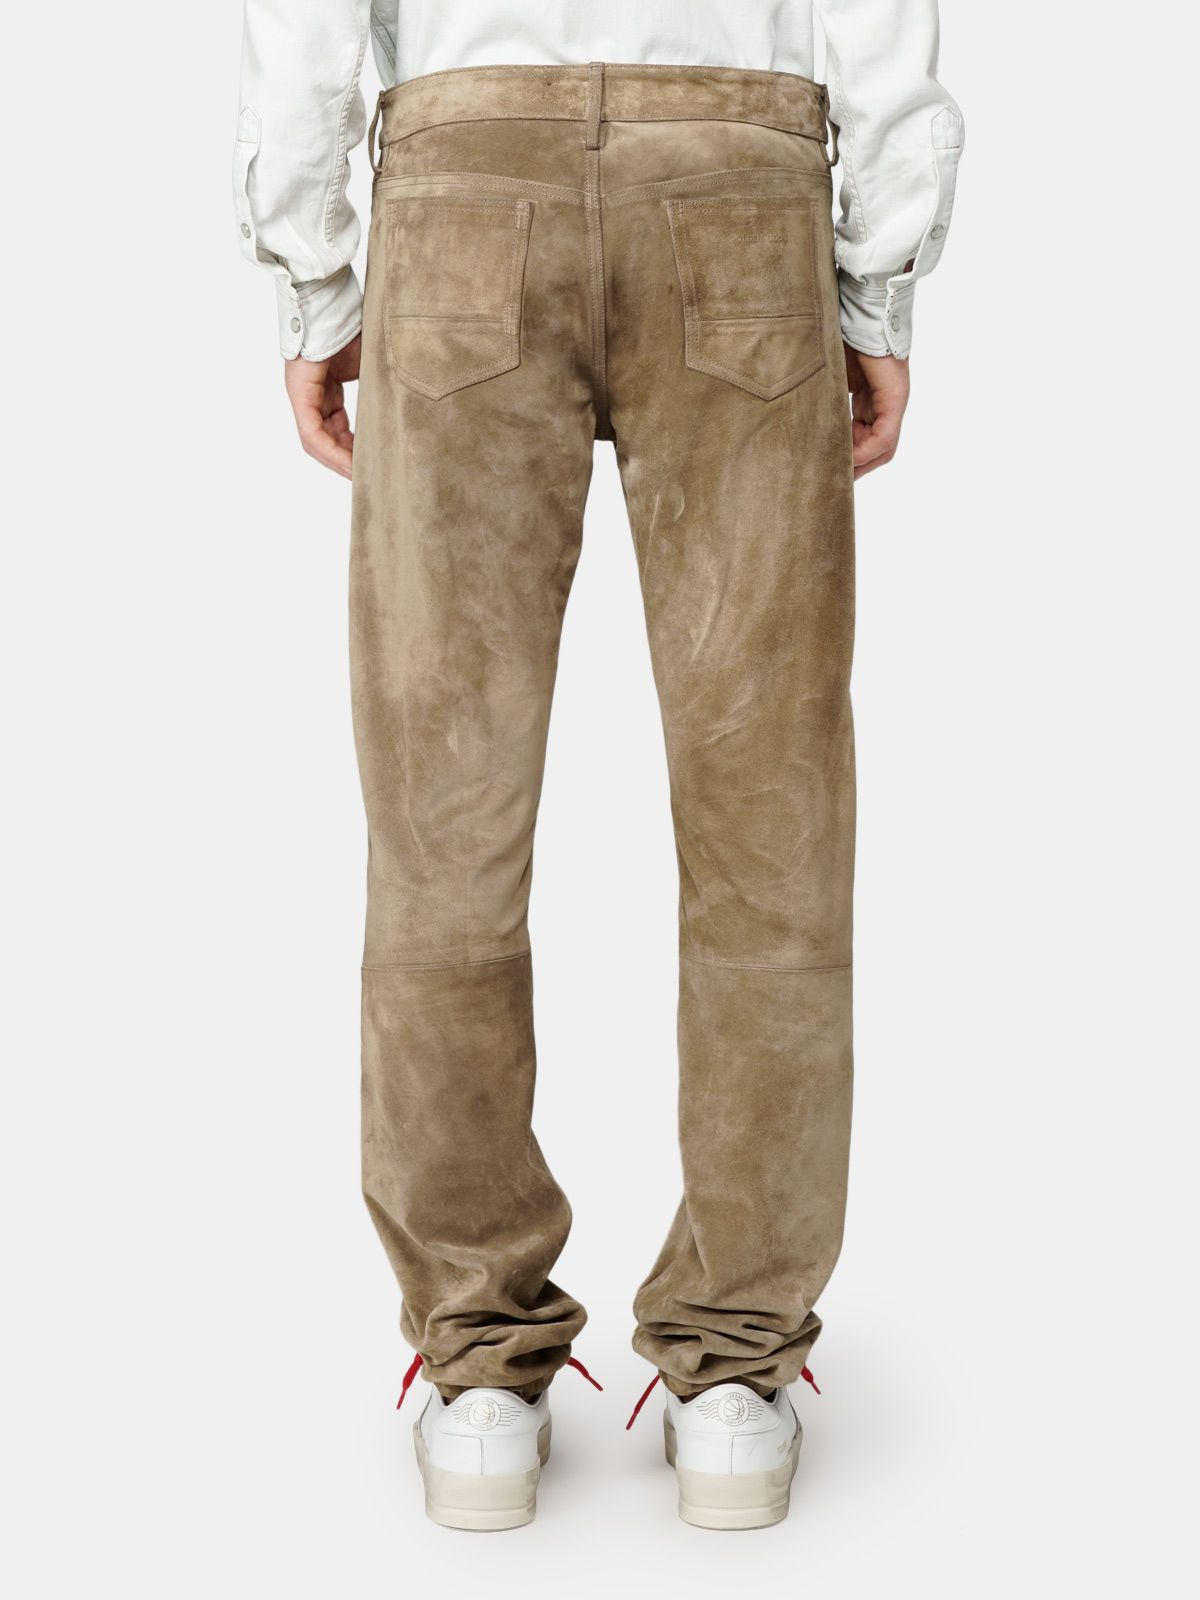 Golden Goose - Asher trousers in suede leather in